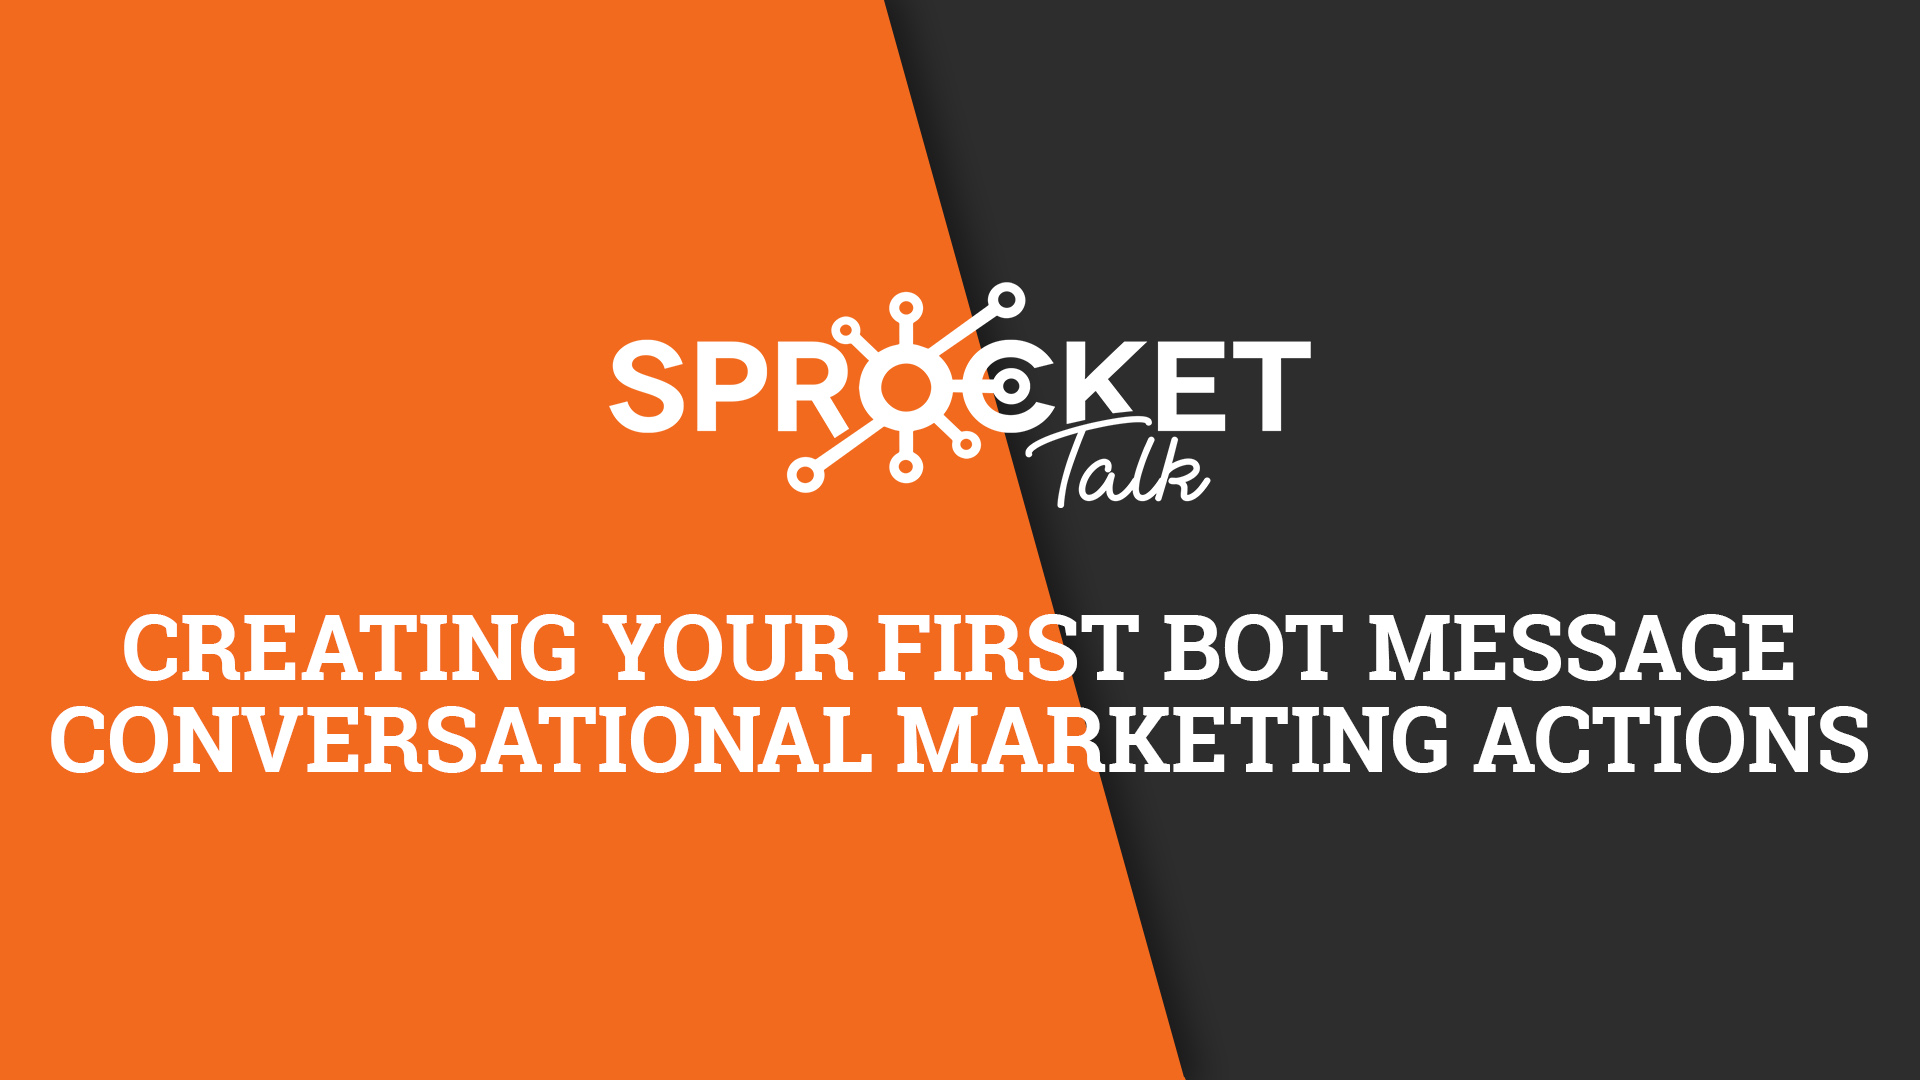 Creating Your First Bot Message Conversational Marketing Actions